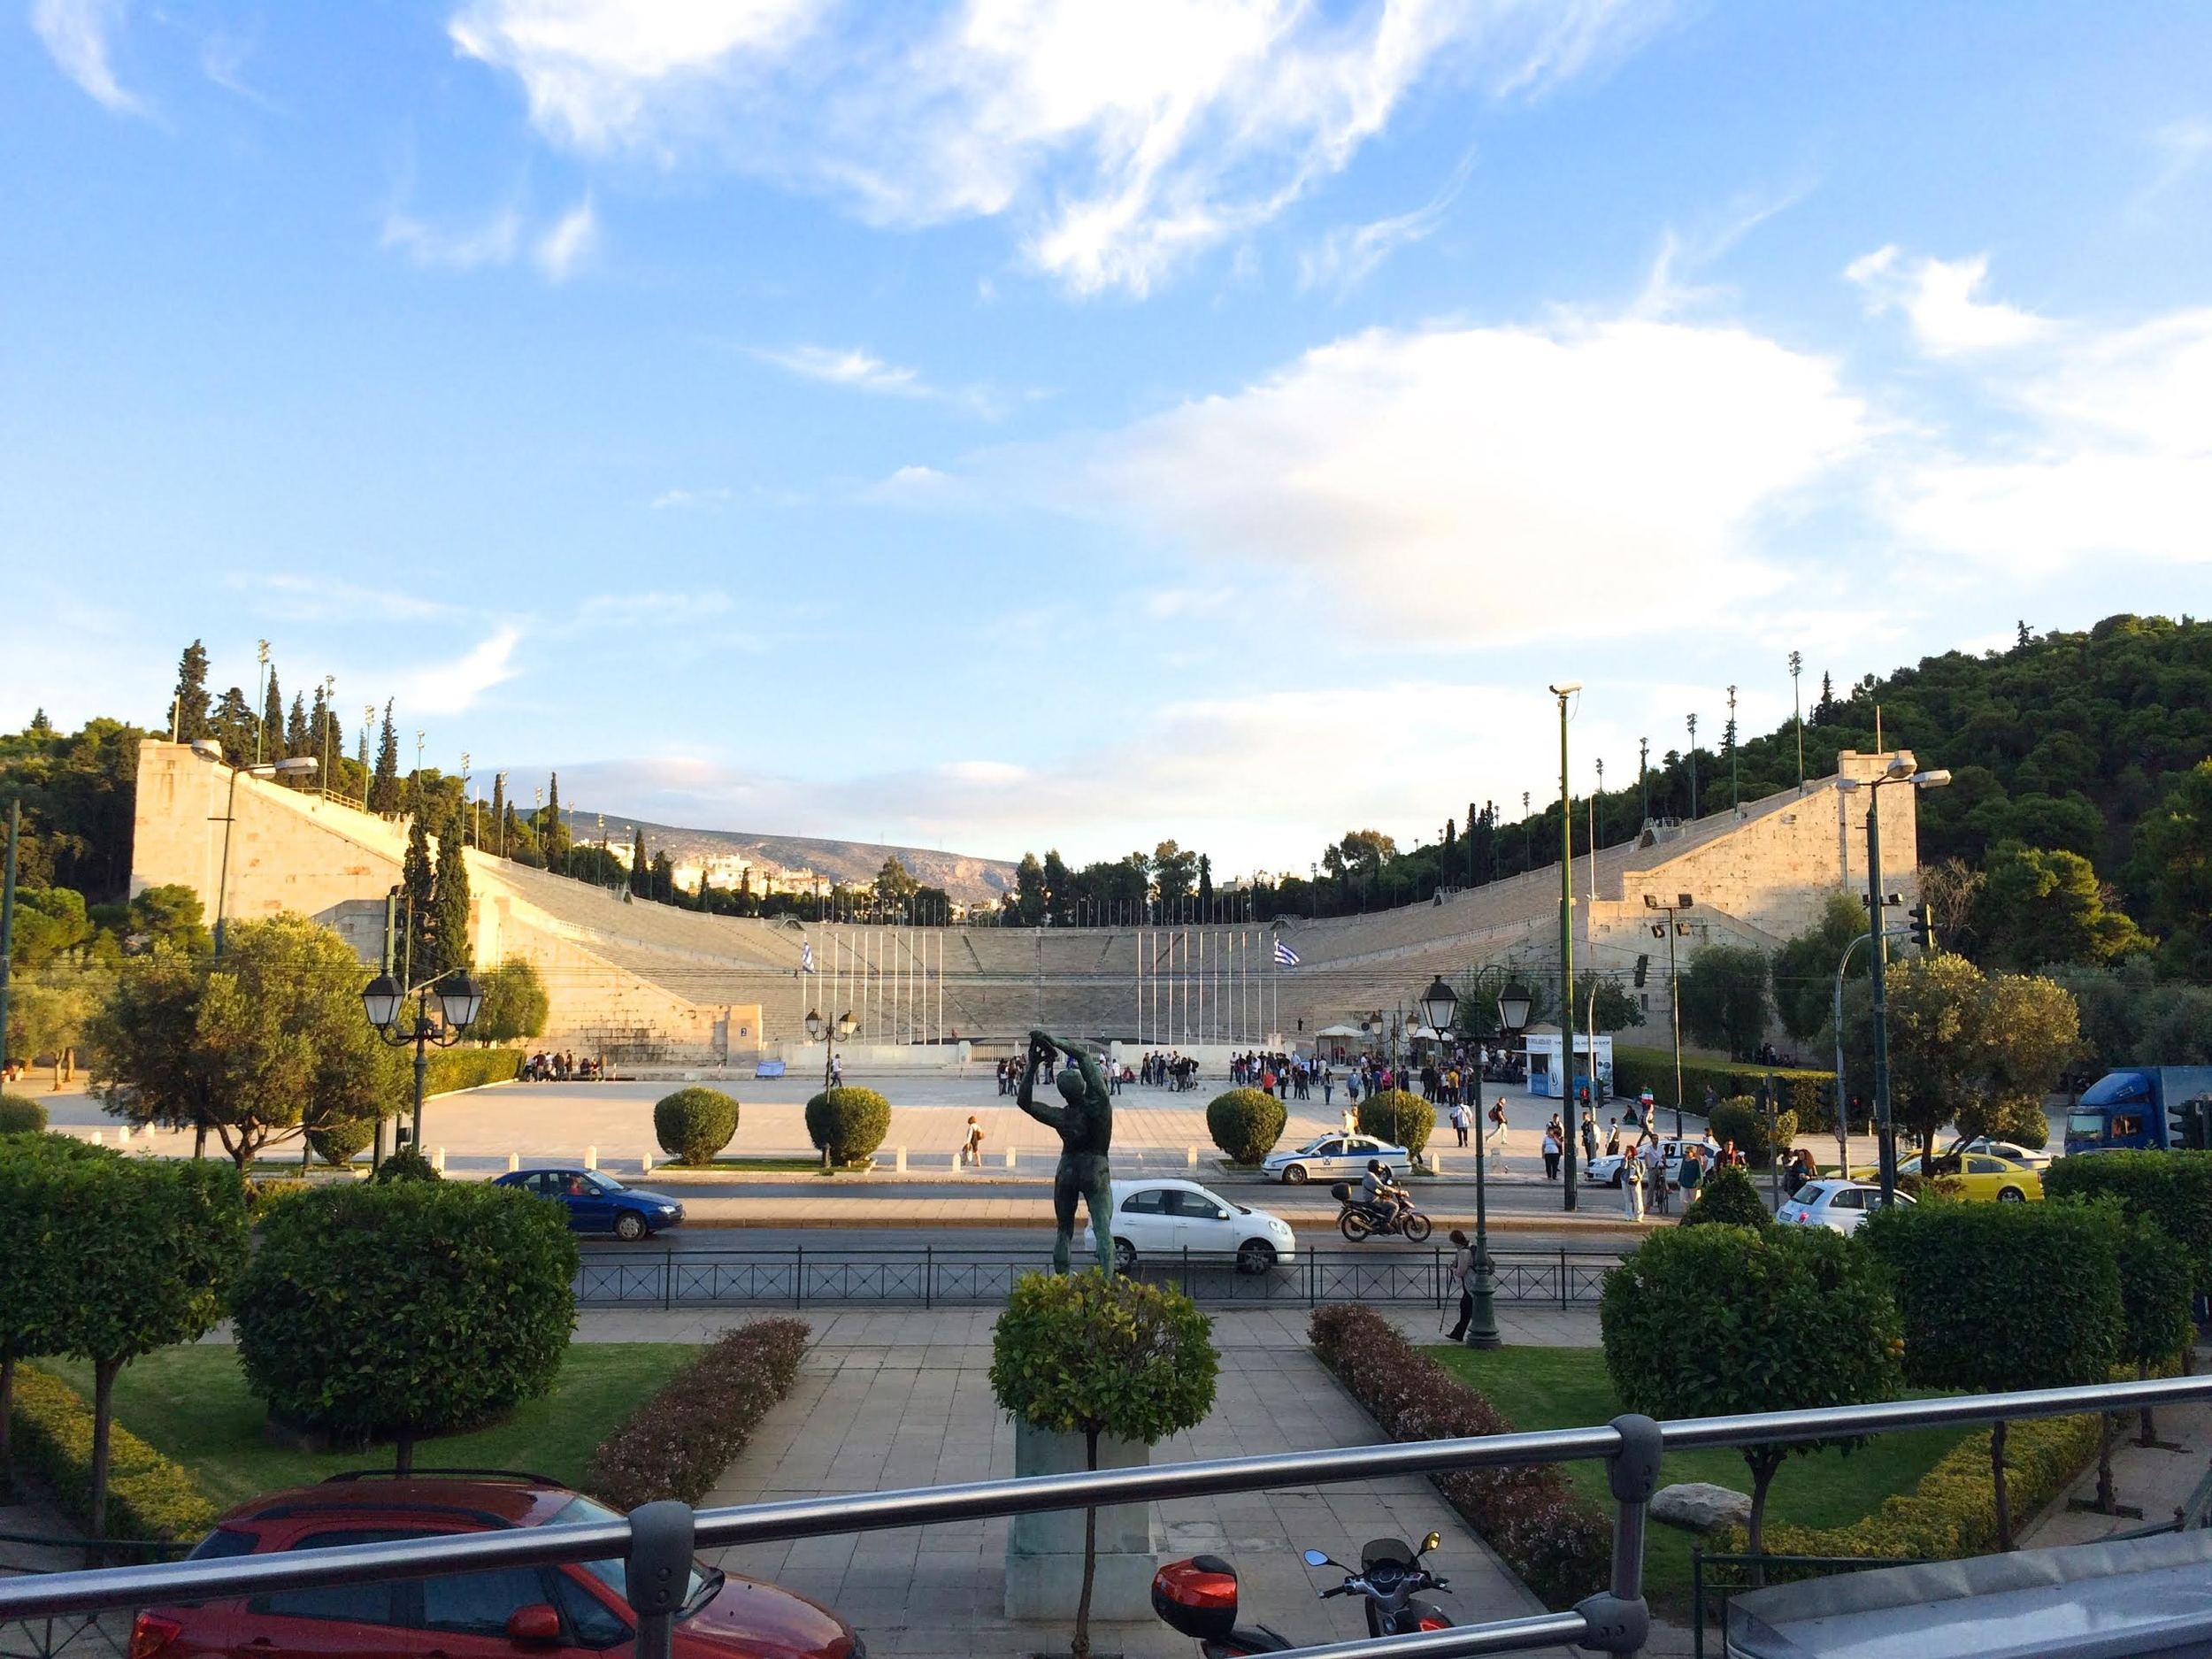 Reconstructed Panathenaic Games stadium which hosted the first modern Olympic Games in Athens in 1896.